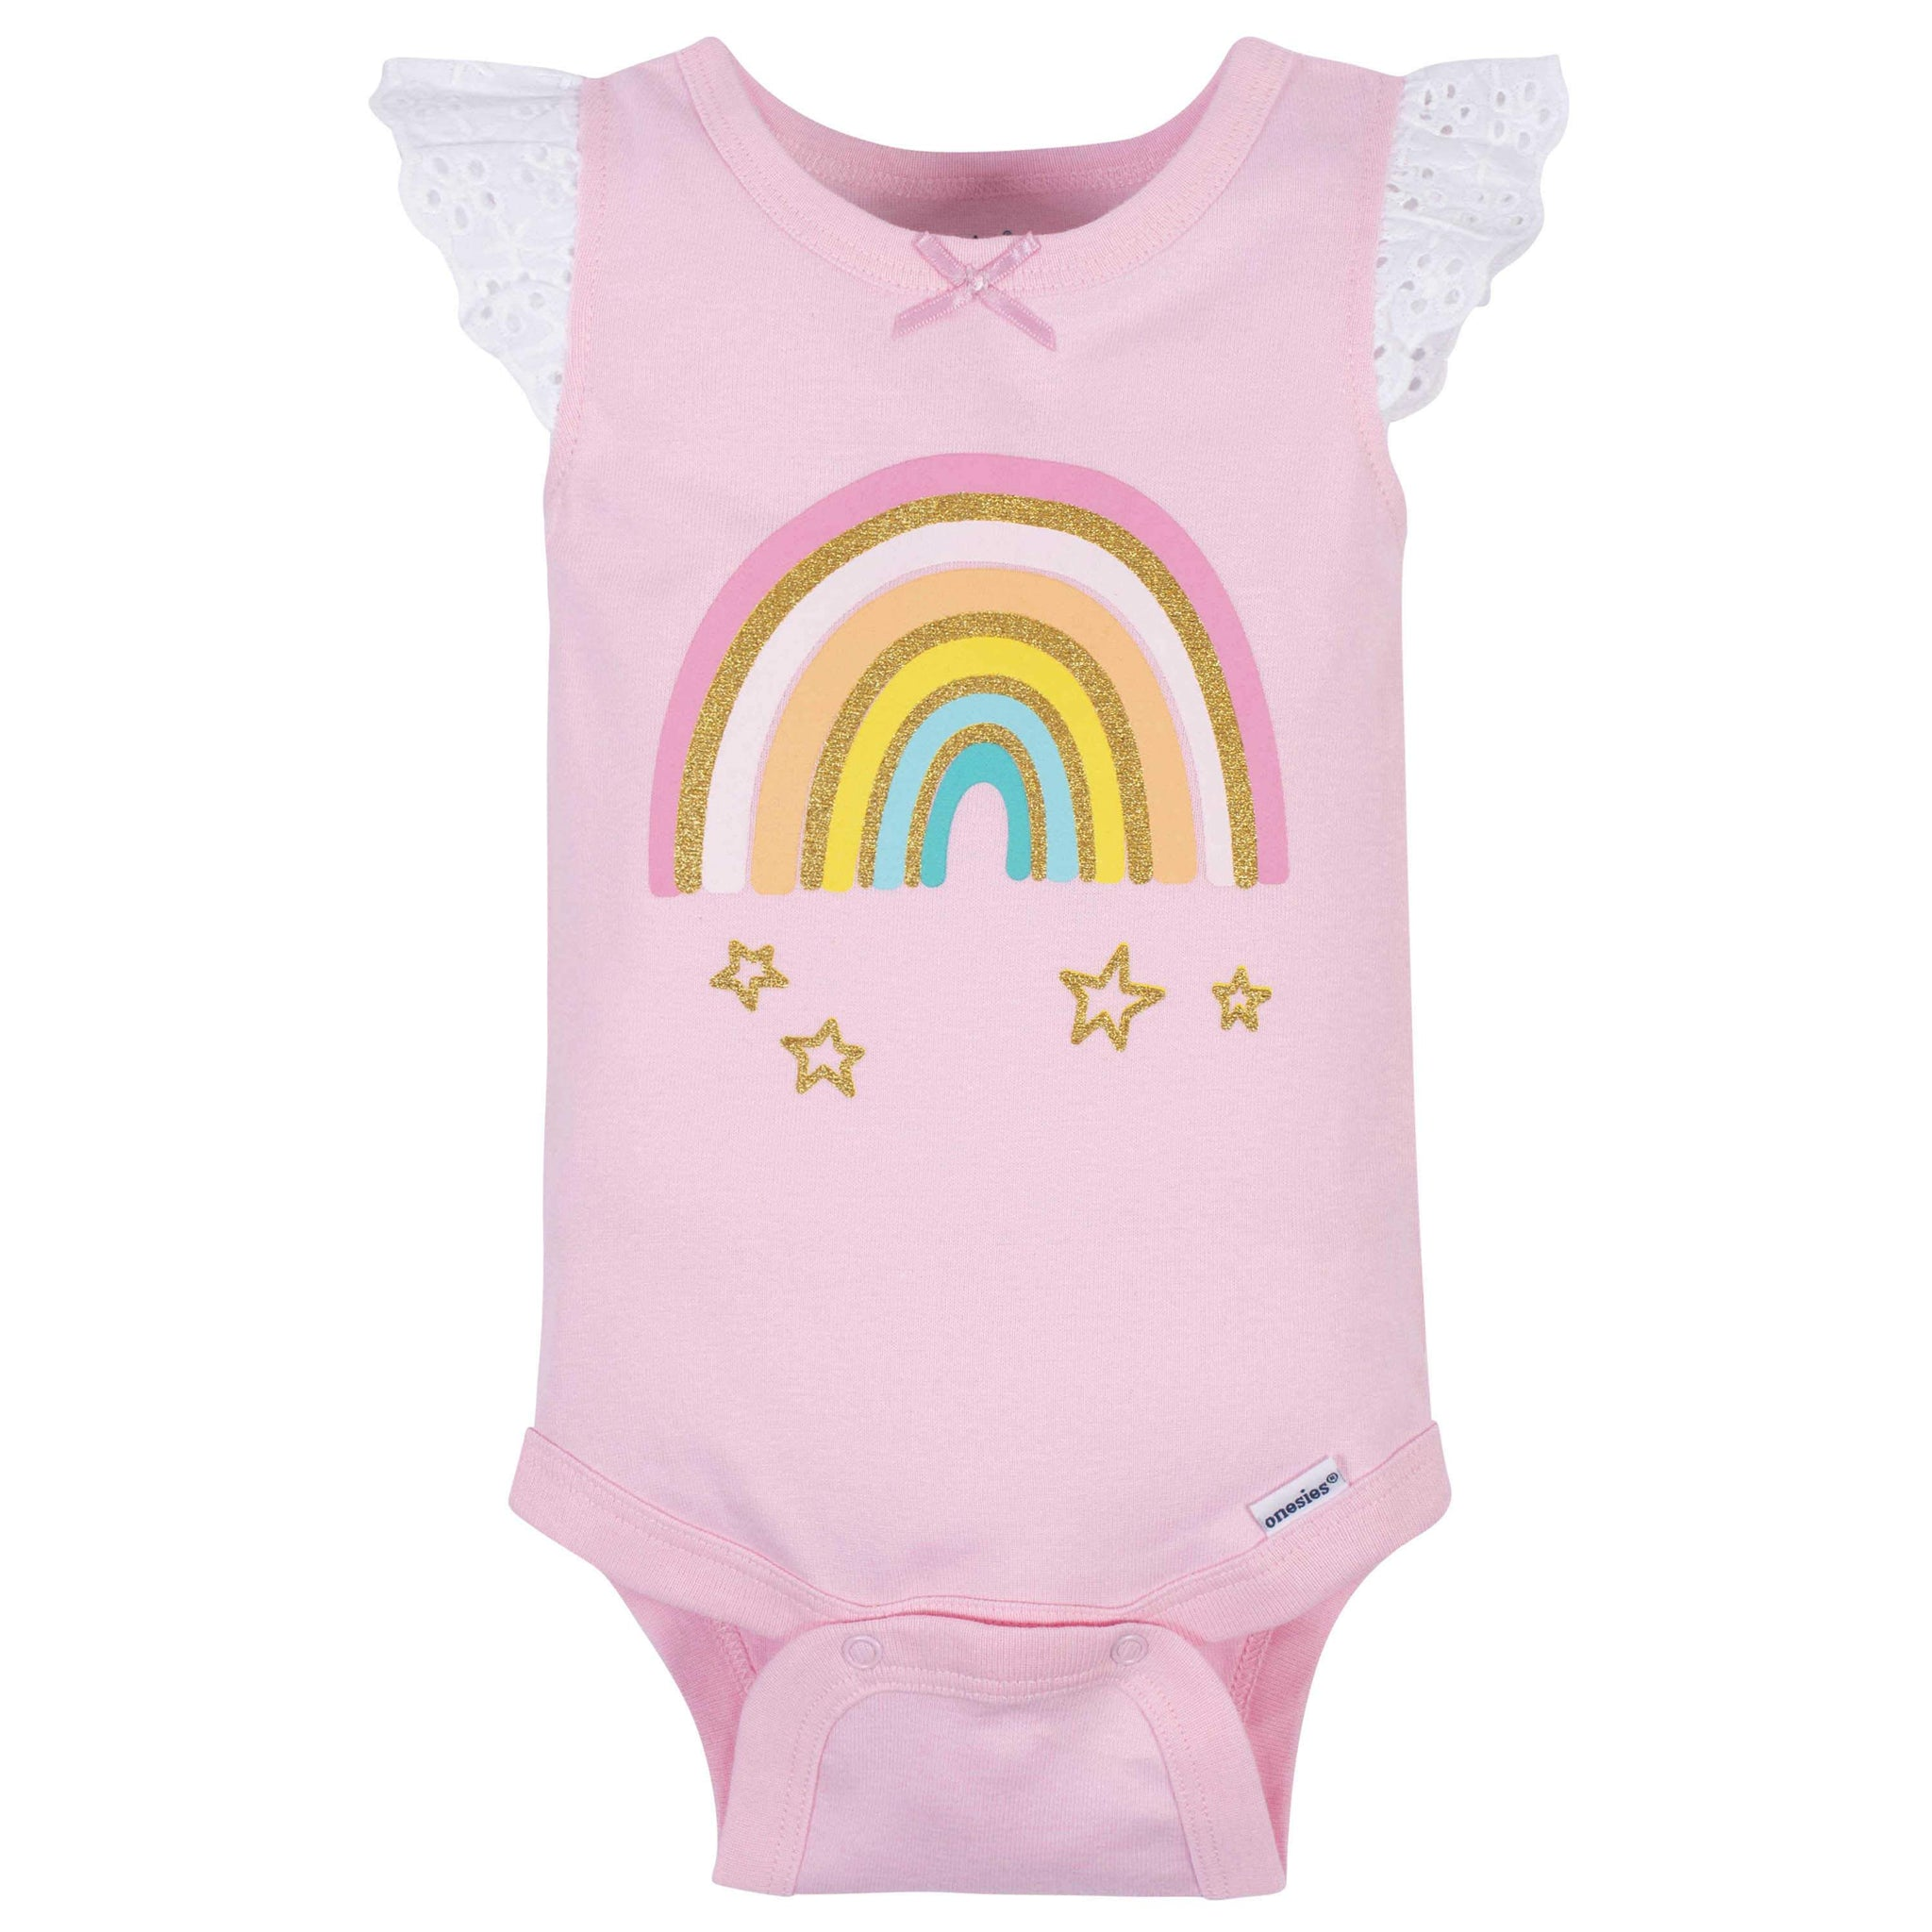 Gerber® 4-Pack Baby Girls Rainbow Sleeveless Onesies Bodysuits-Gerber Childrenswear